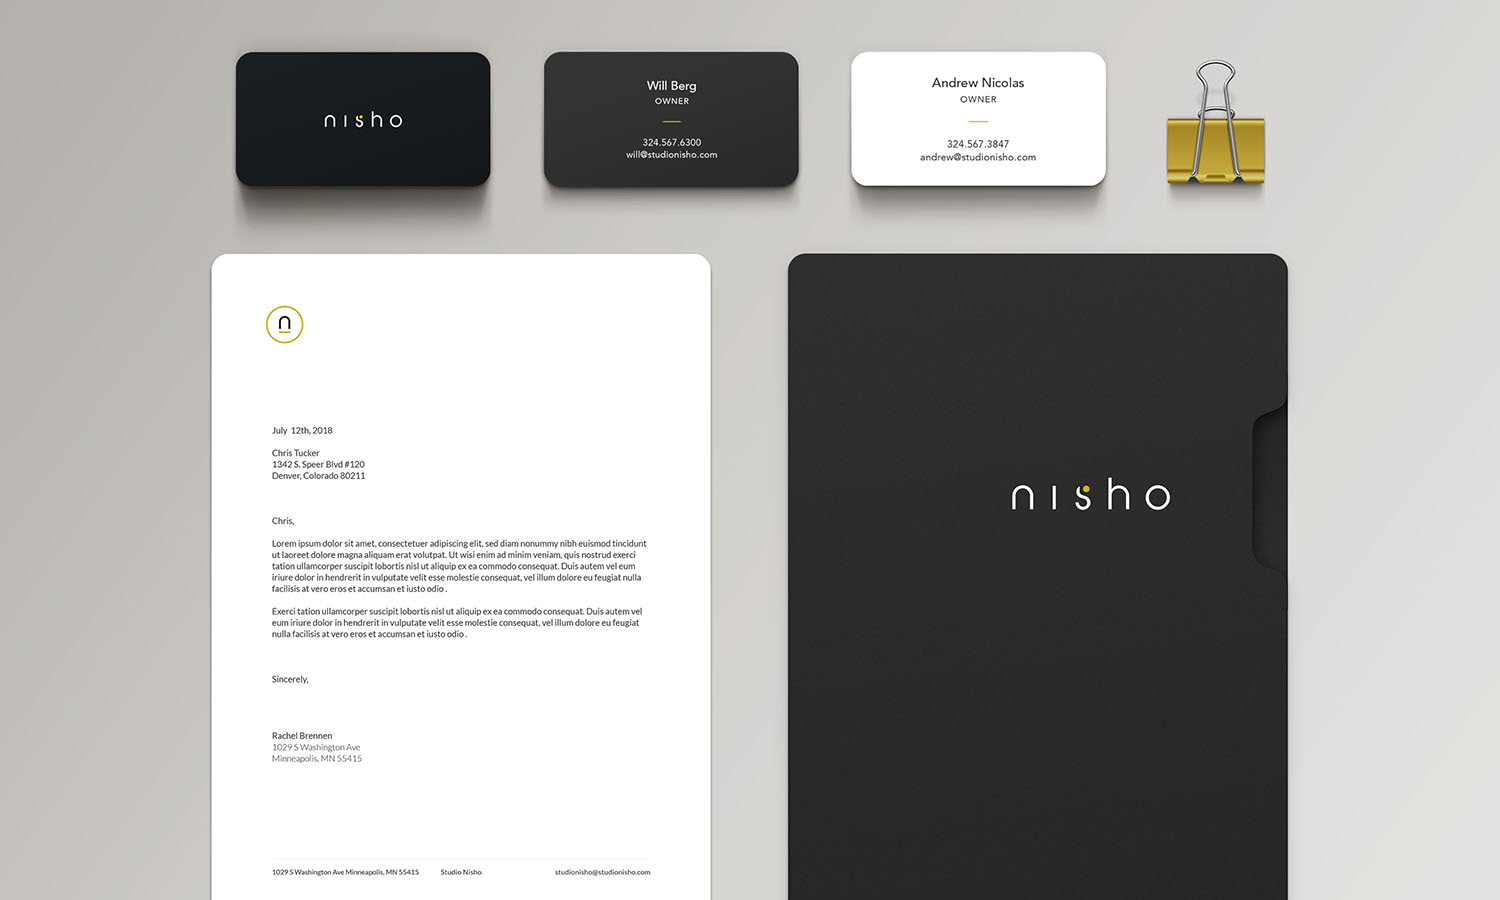 Photo of stationary and business cards designed for new Studio Nisho brand identity.